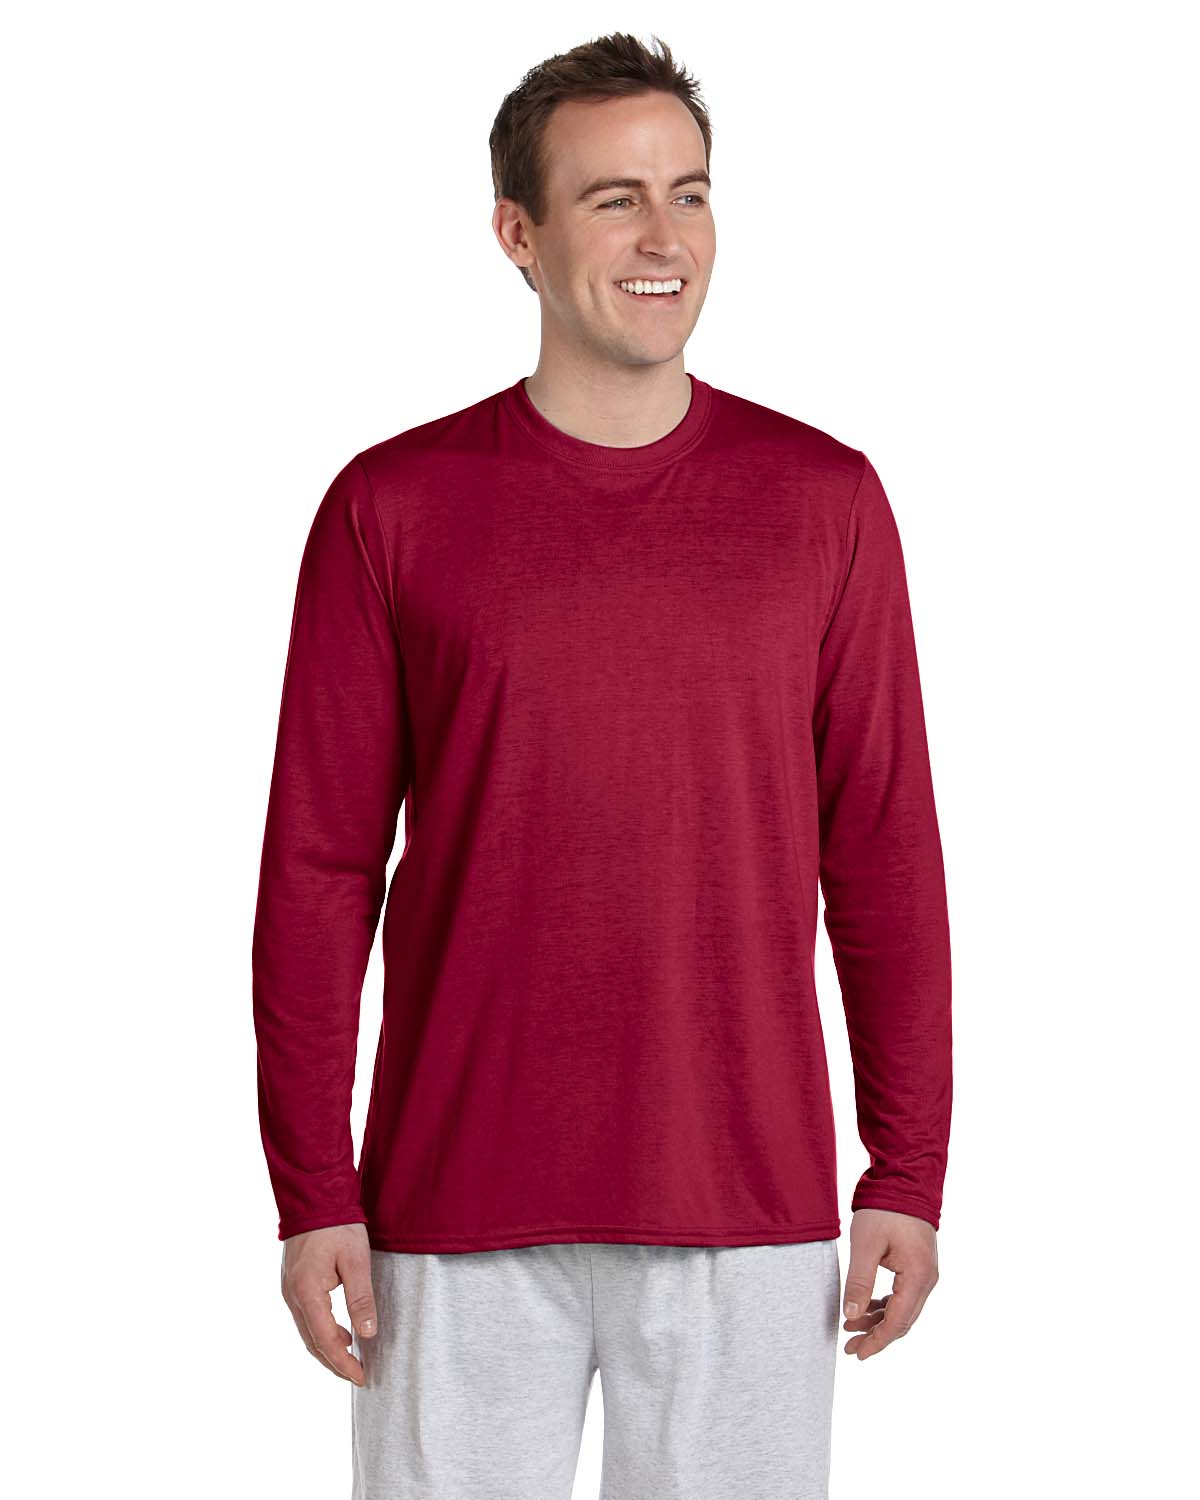 gildan performance 100 polyester 4 5 oz long sleeve t shirt g424 ebay. Black Bedroom Furniture Sets. Home Design Ideas